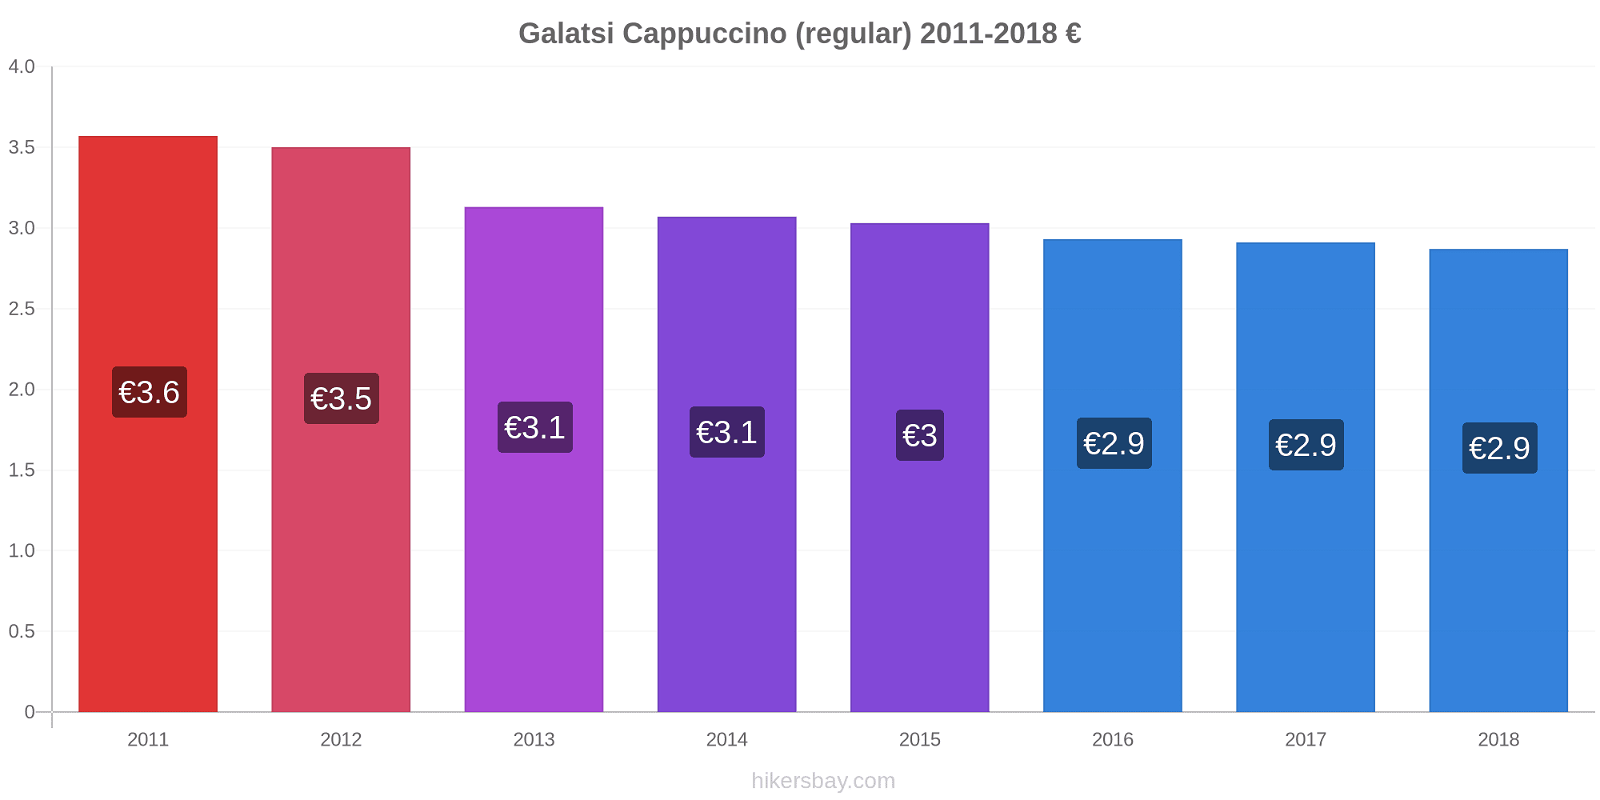 Galatsi price changes Cappuccino (regular) hikersbay.com